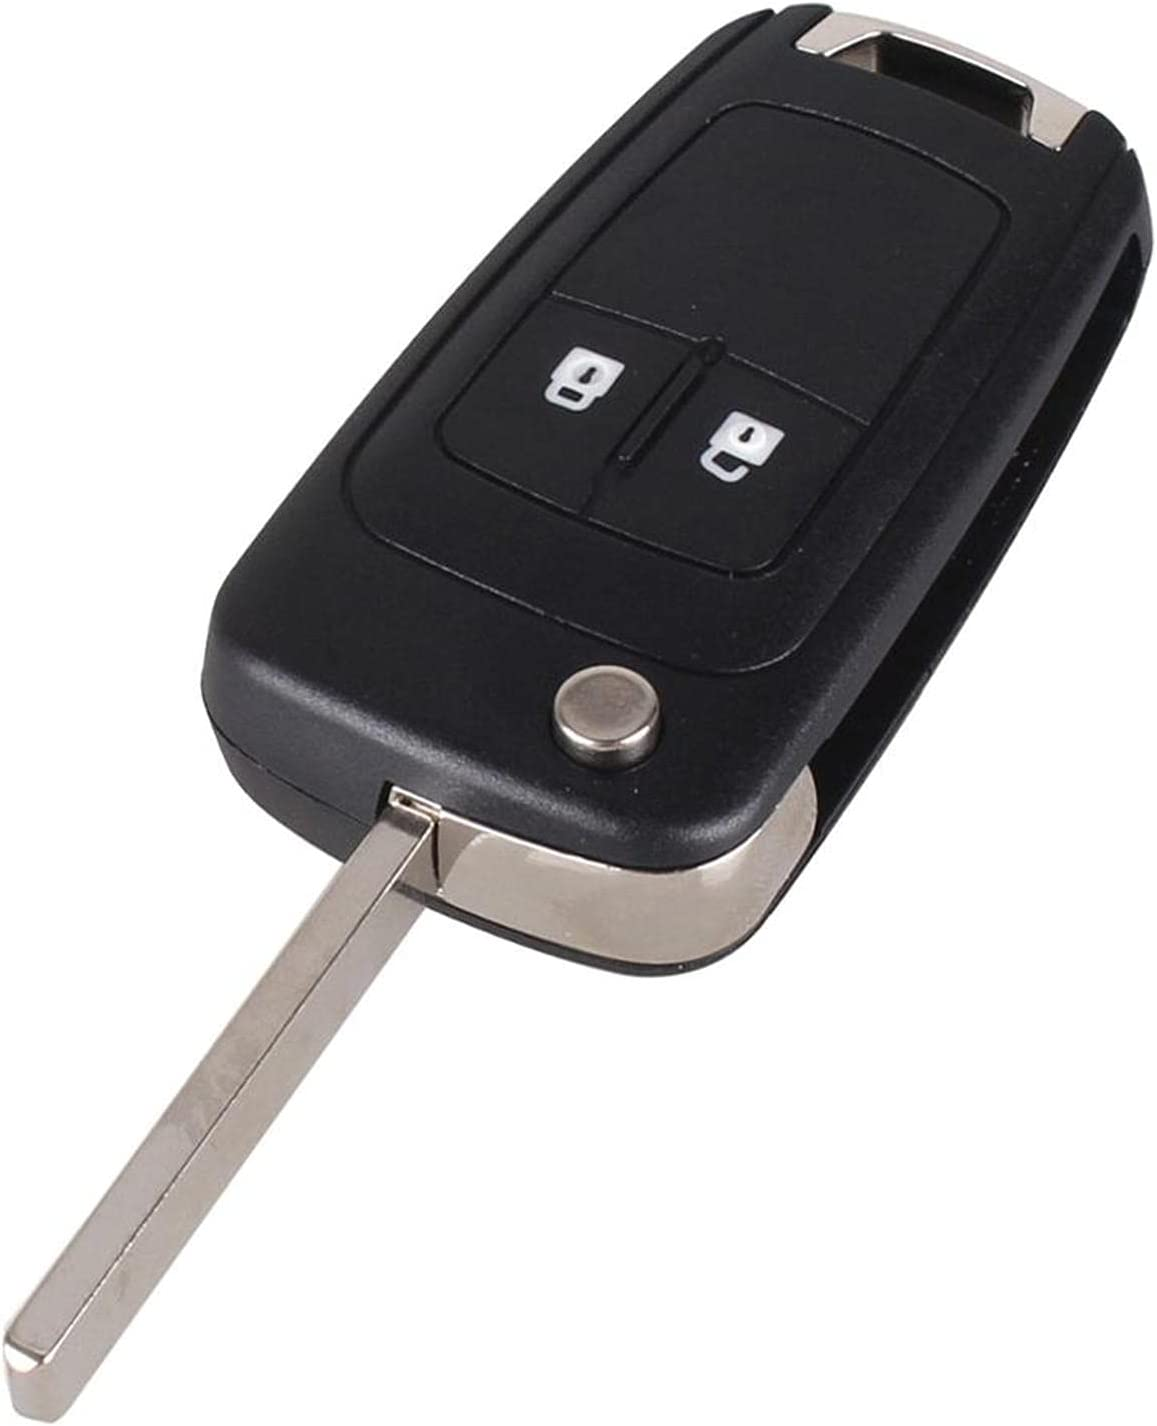 FLJKCT Car Max 46% OFF Key Animer and price revision Shell 2 3 4 5 Flip Remote She Folding Buttons